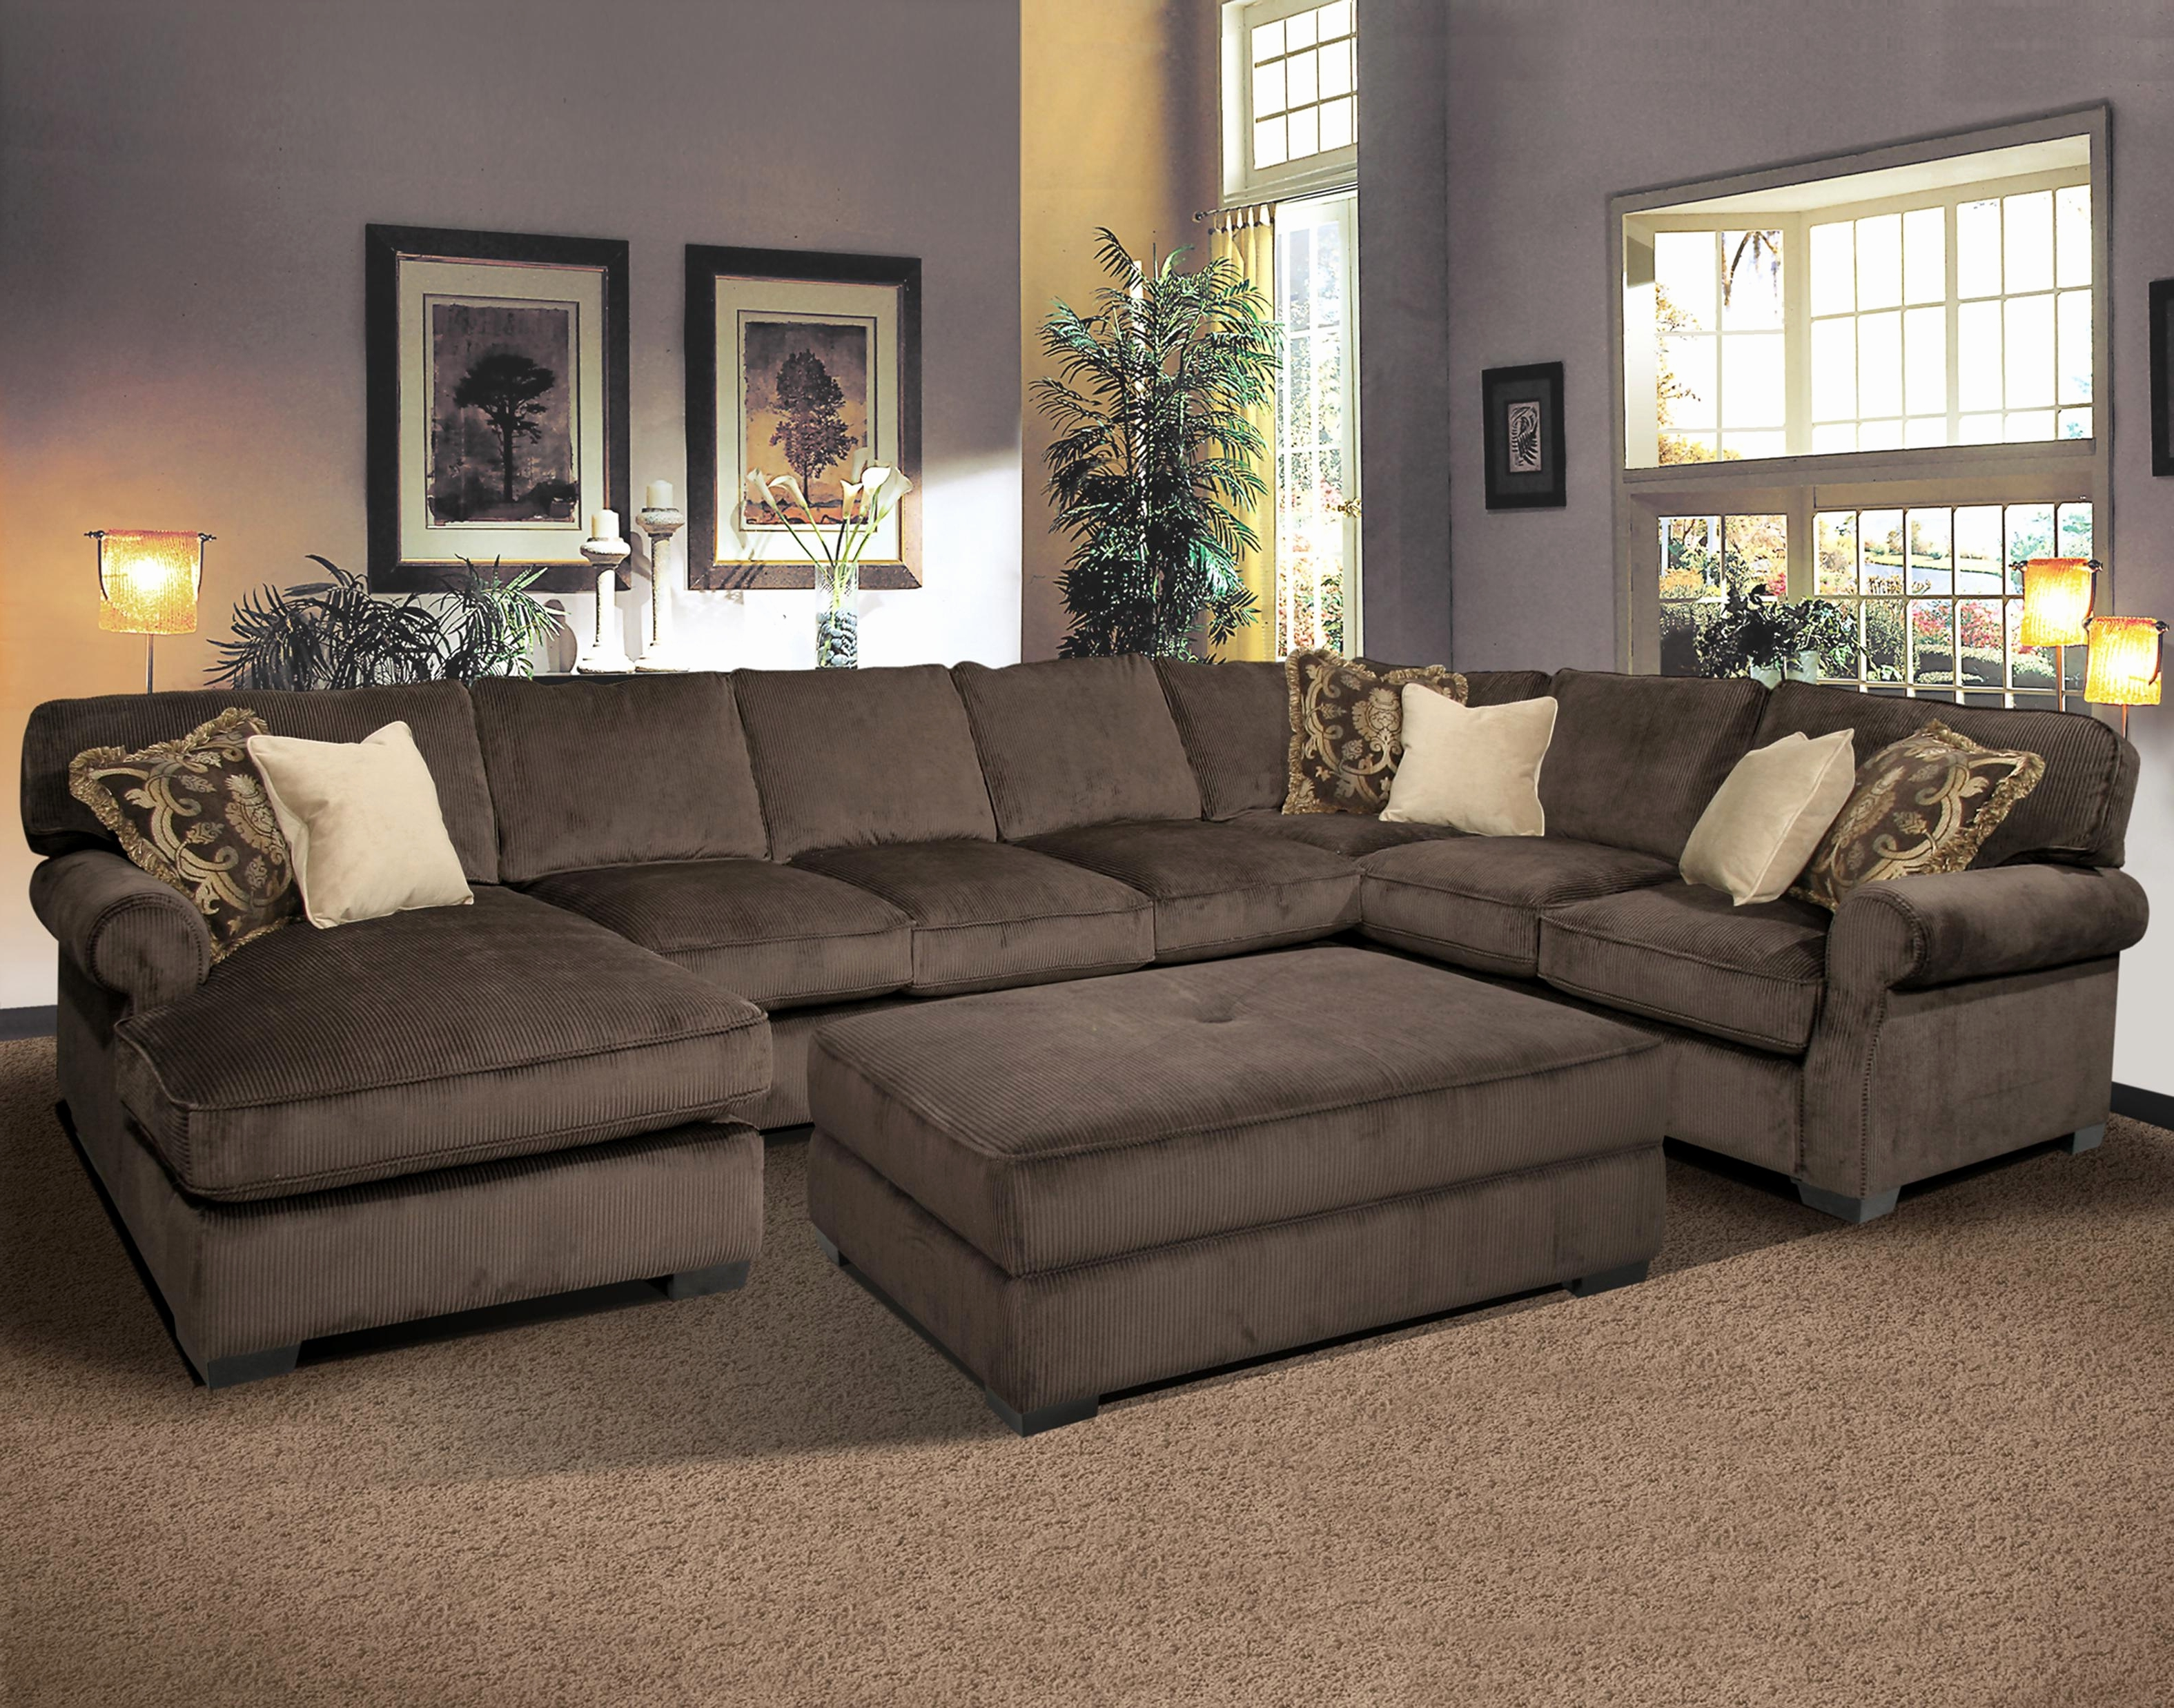 Sofas : Corner Sofa 2 Seater Sofa Quality Sofa Brands High Quality Pertaining To Newest Quality Sectional Sofas (View 18 of 20)